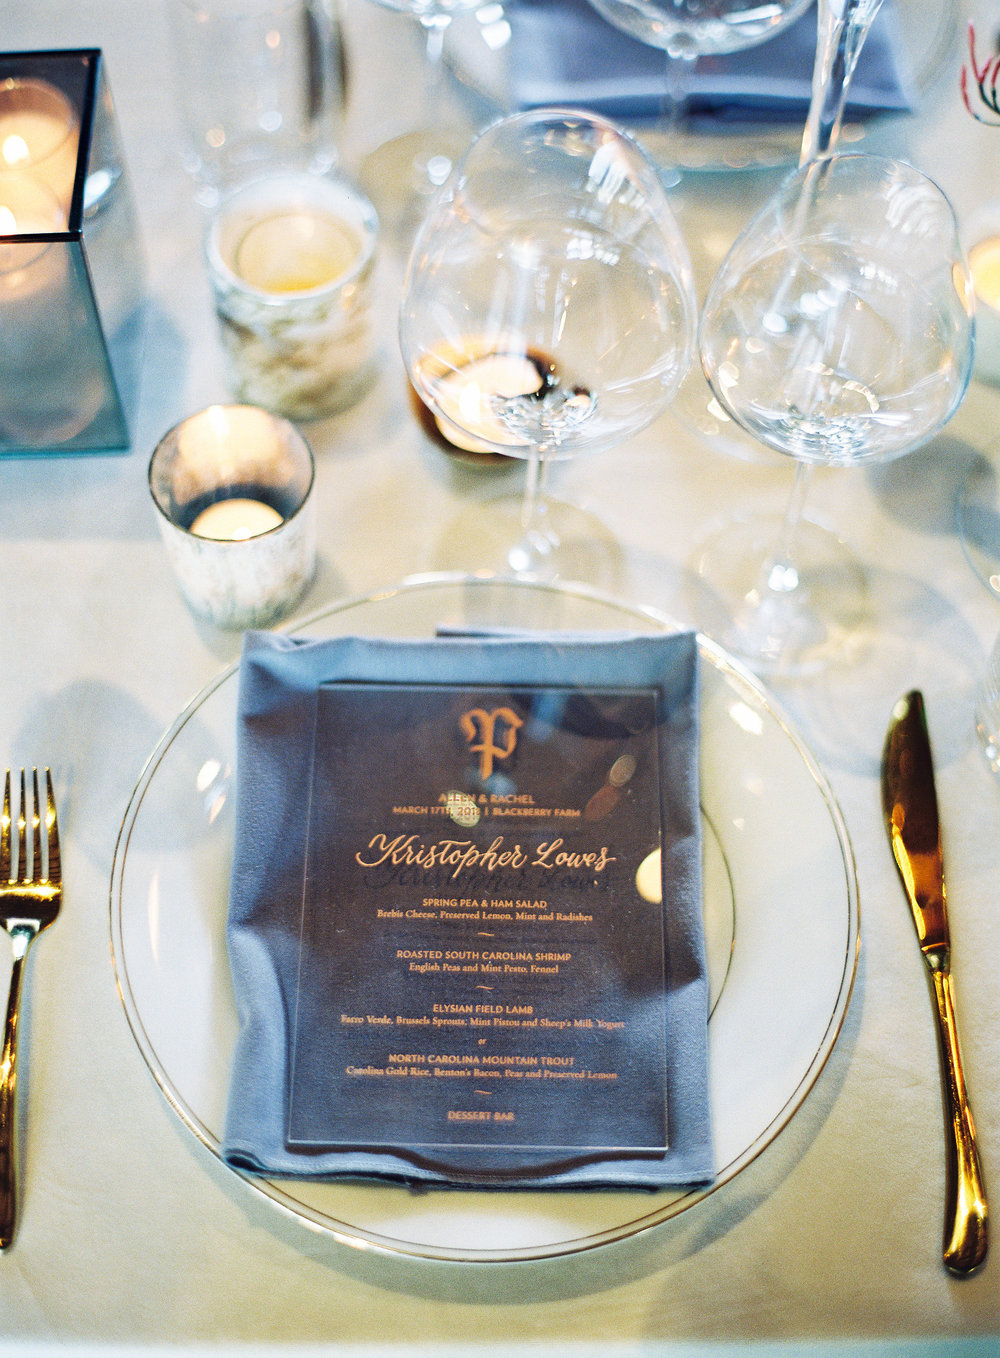 Blackberry Farm Wedding: Acrylic dinner menus printed in rose gold, with names of each guest written in script calligraphy   design and calligraphy by Chavelli www.chavelli.com